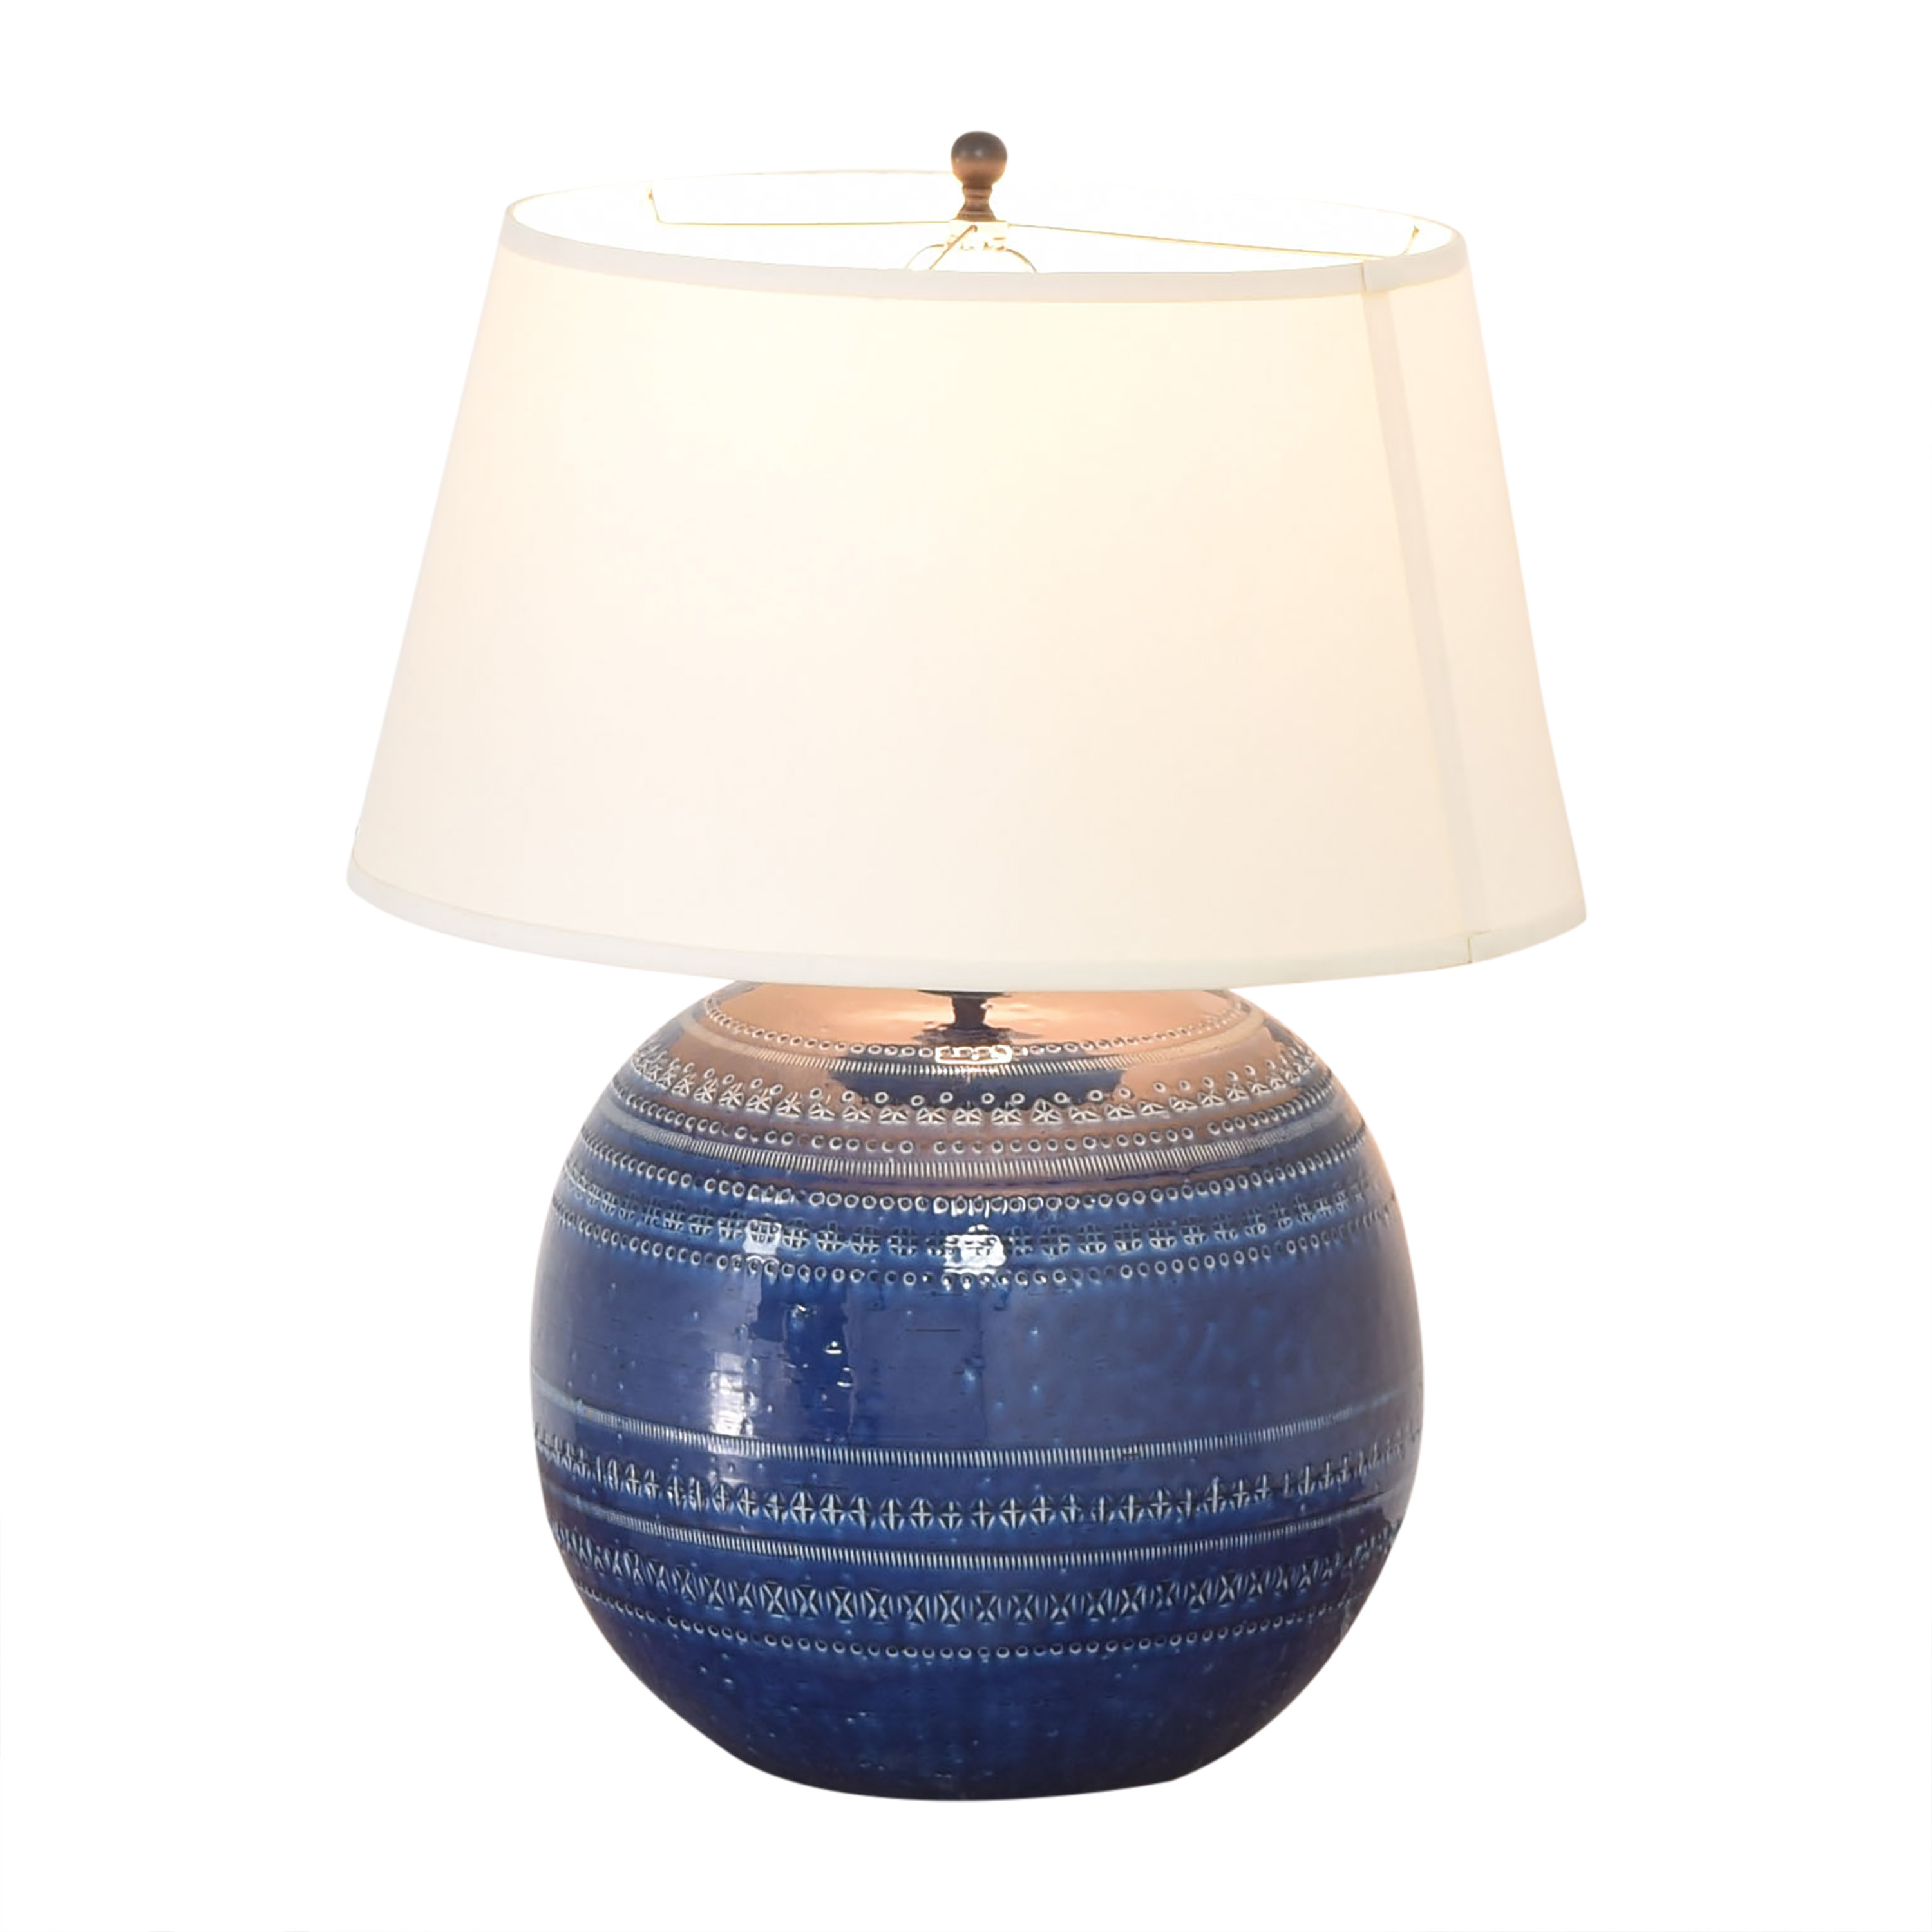 Ethan Allen Ethan Allen Romano Table Lamp blue and off white